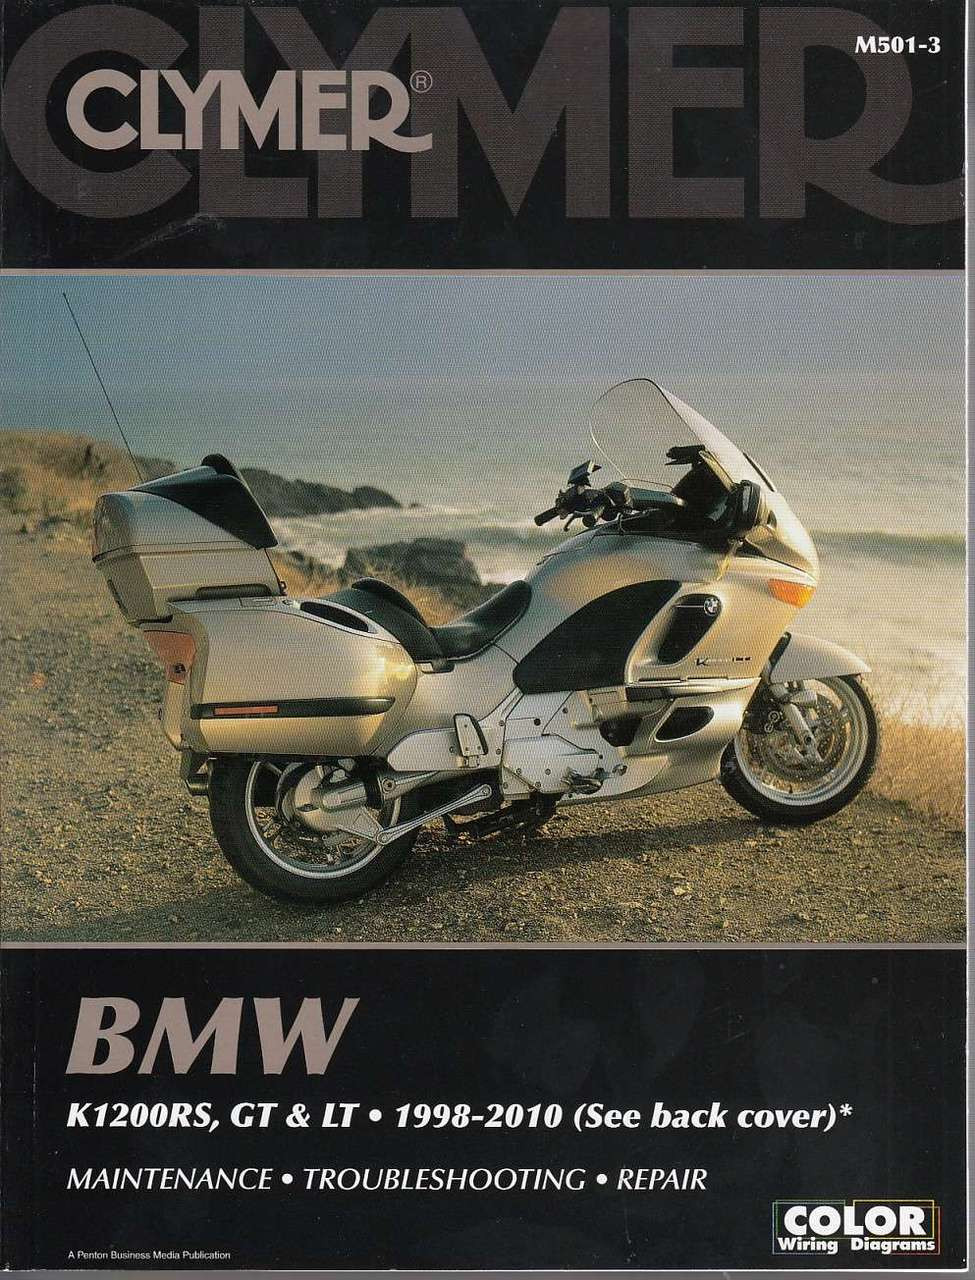 Bmw K1200rs K1200gt K1200lt 1998 2010 Workshop Manual